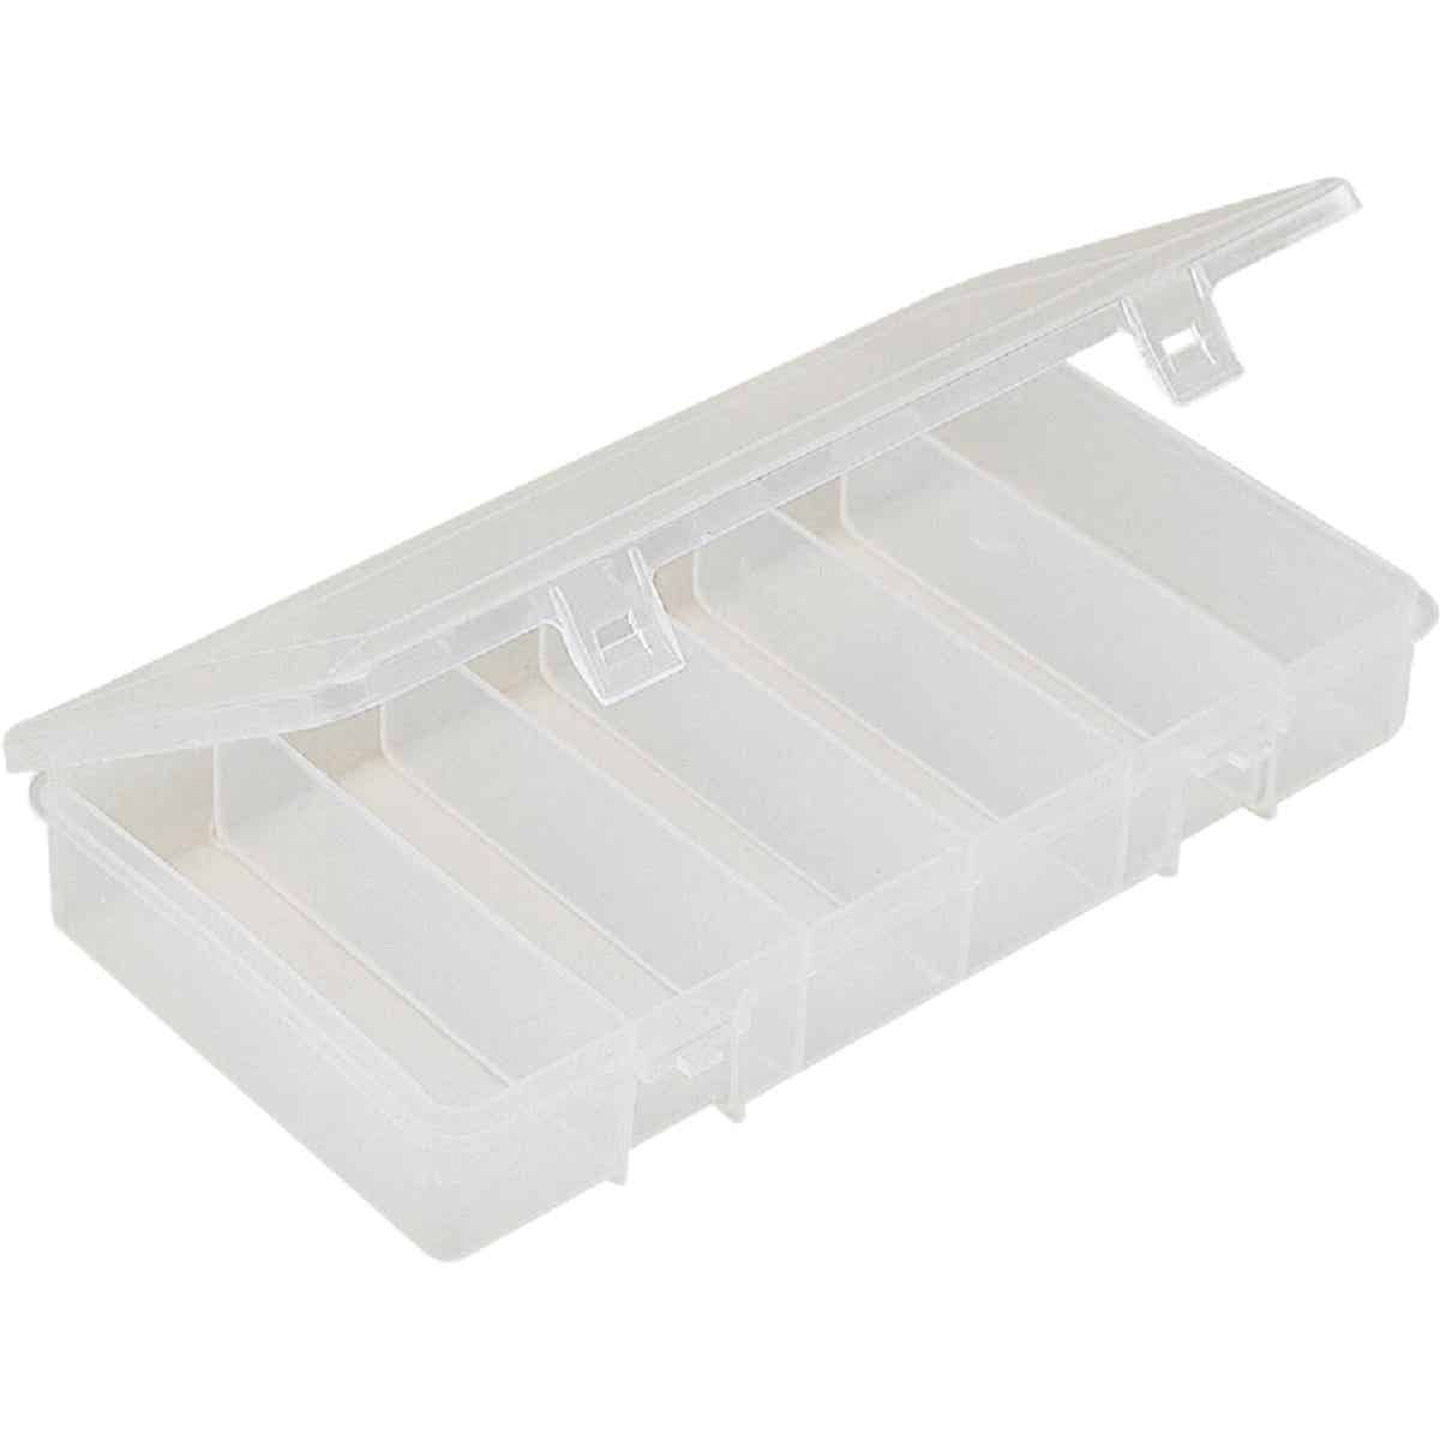 SouthBend 6-Compartment Tackle Box Image 1